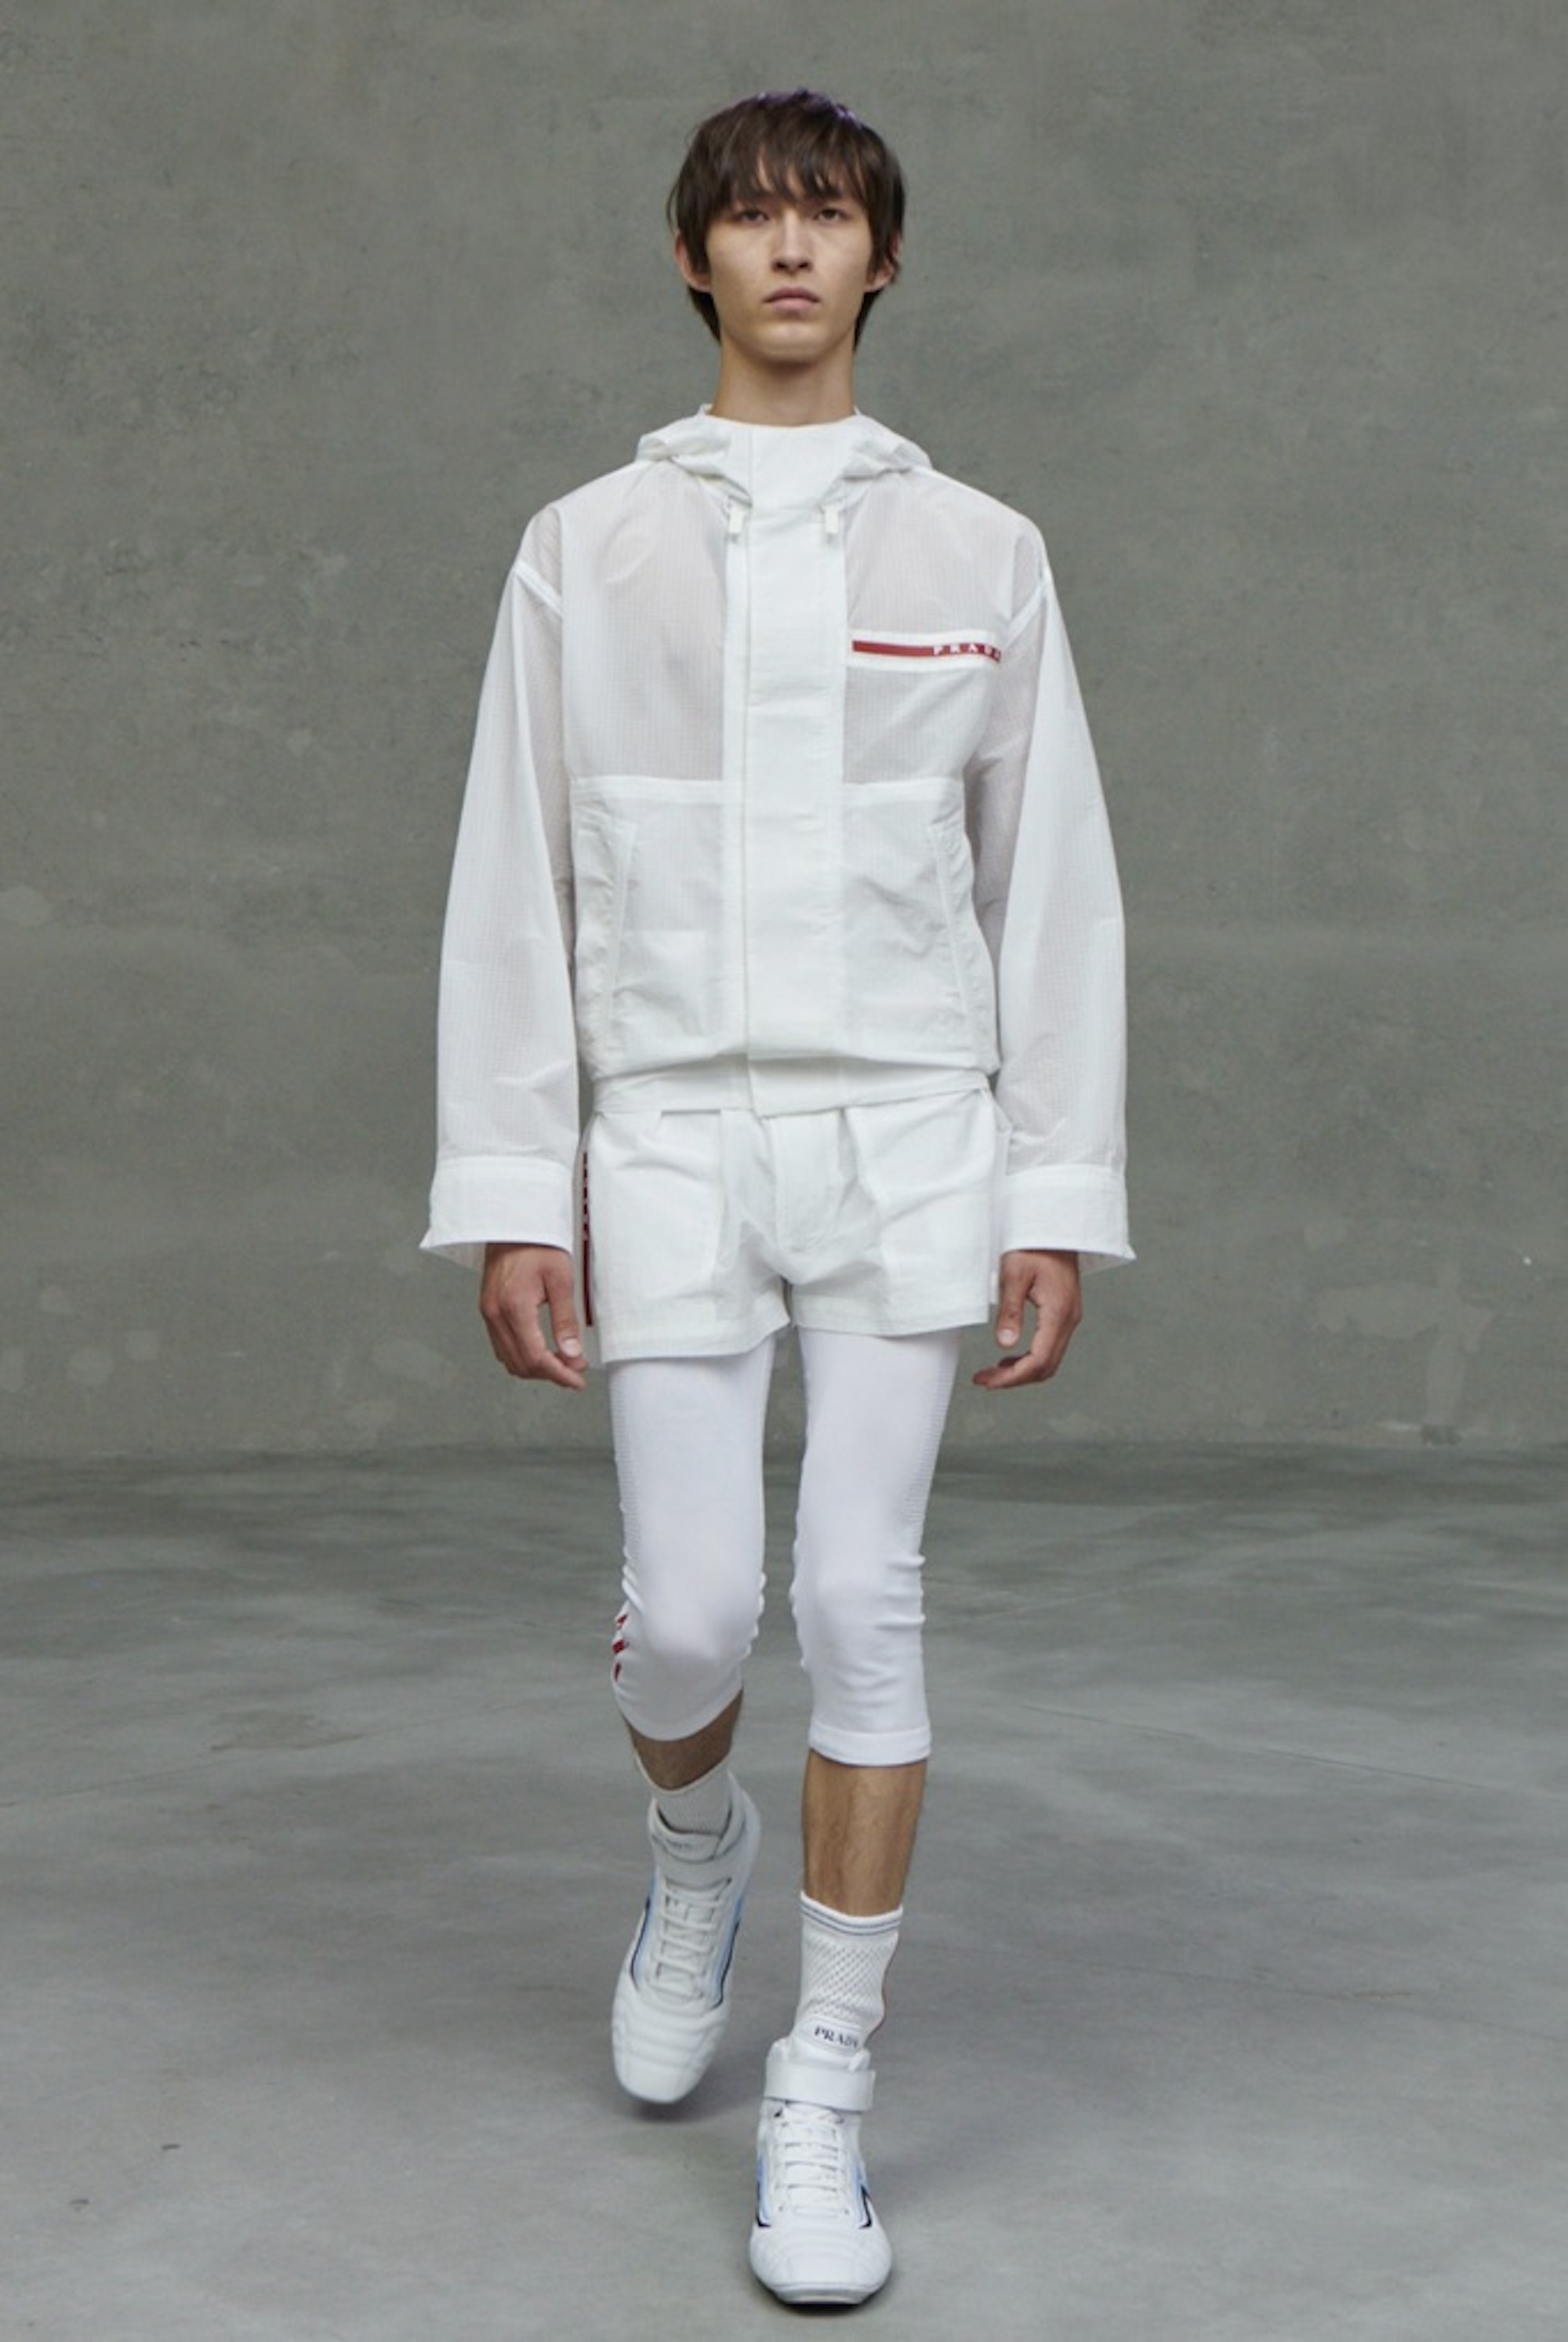 Prada SS21 collection white two piece